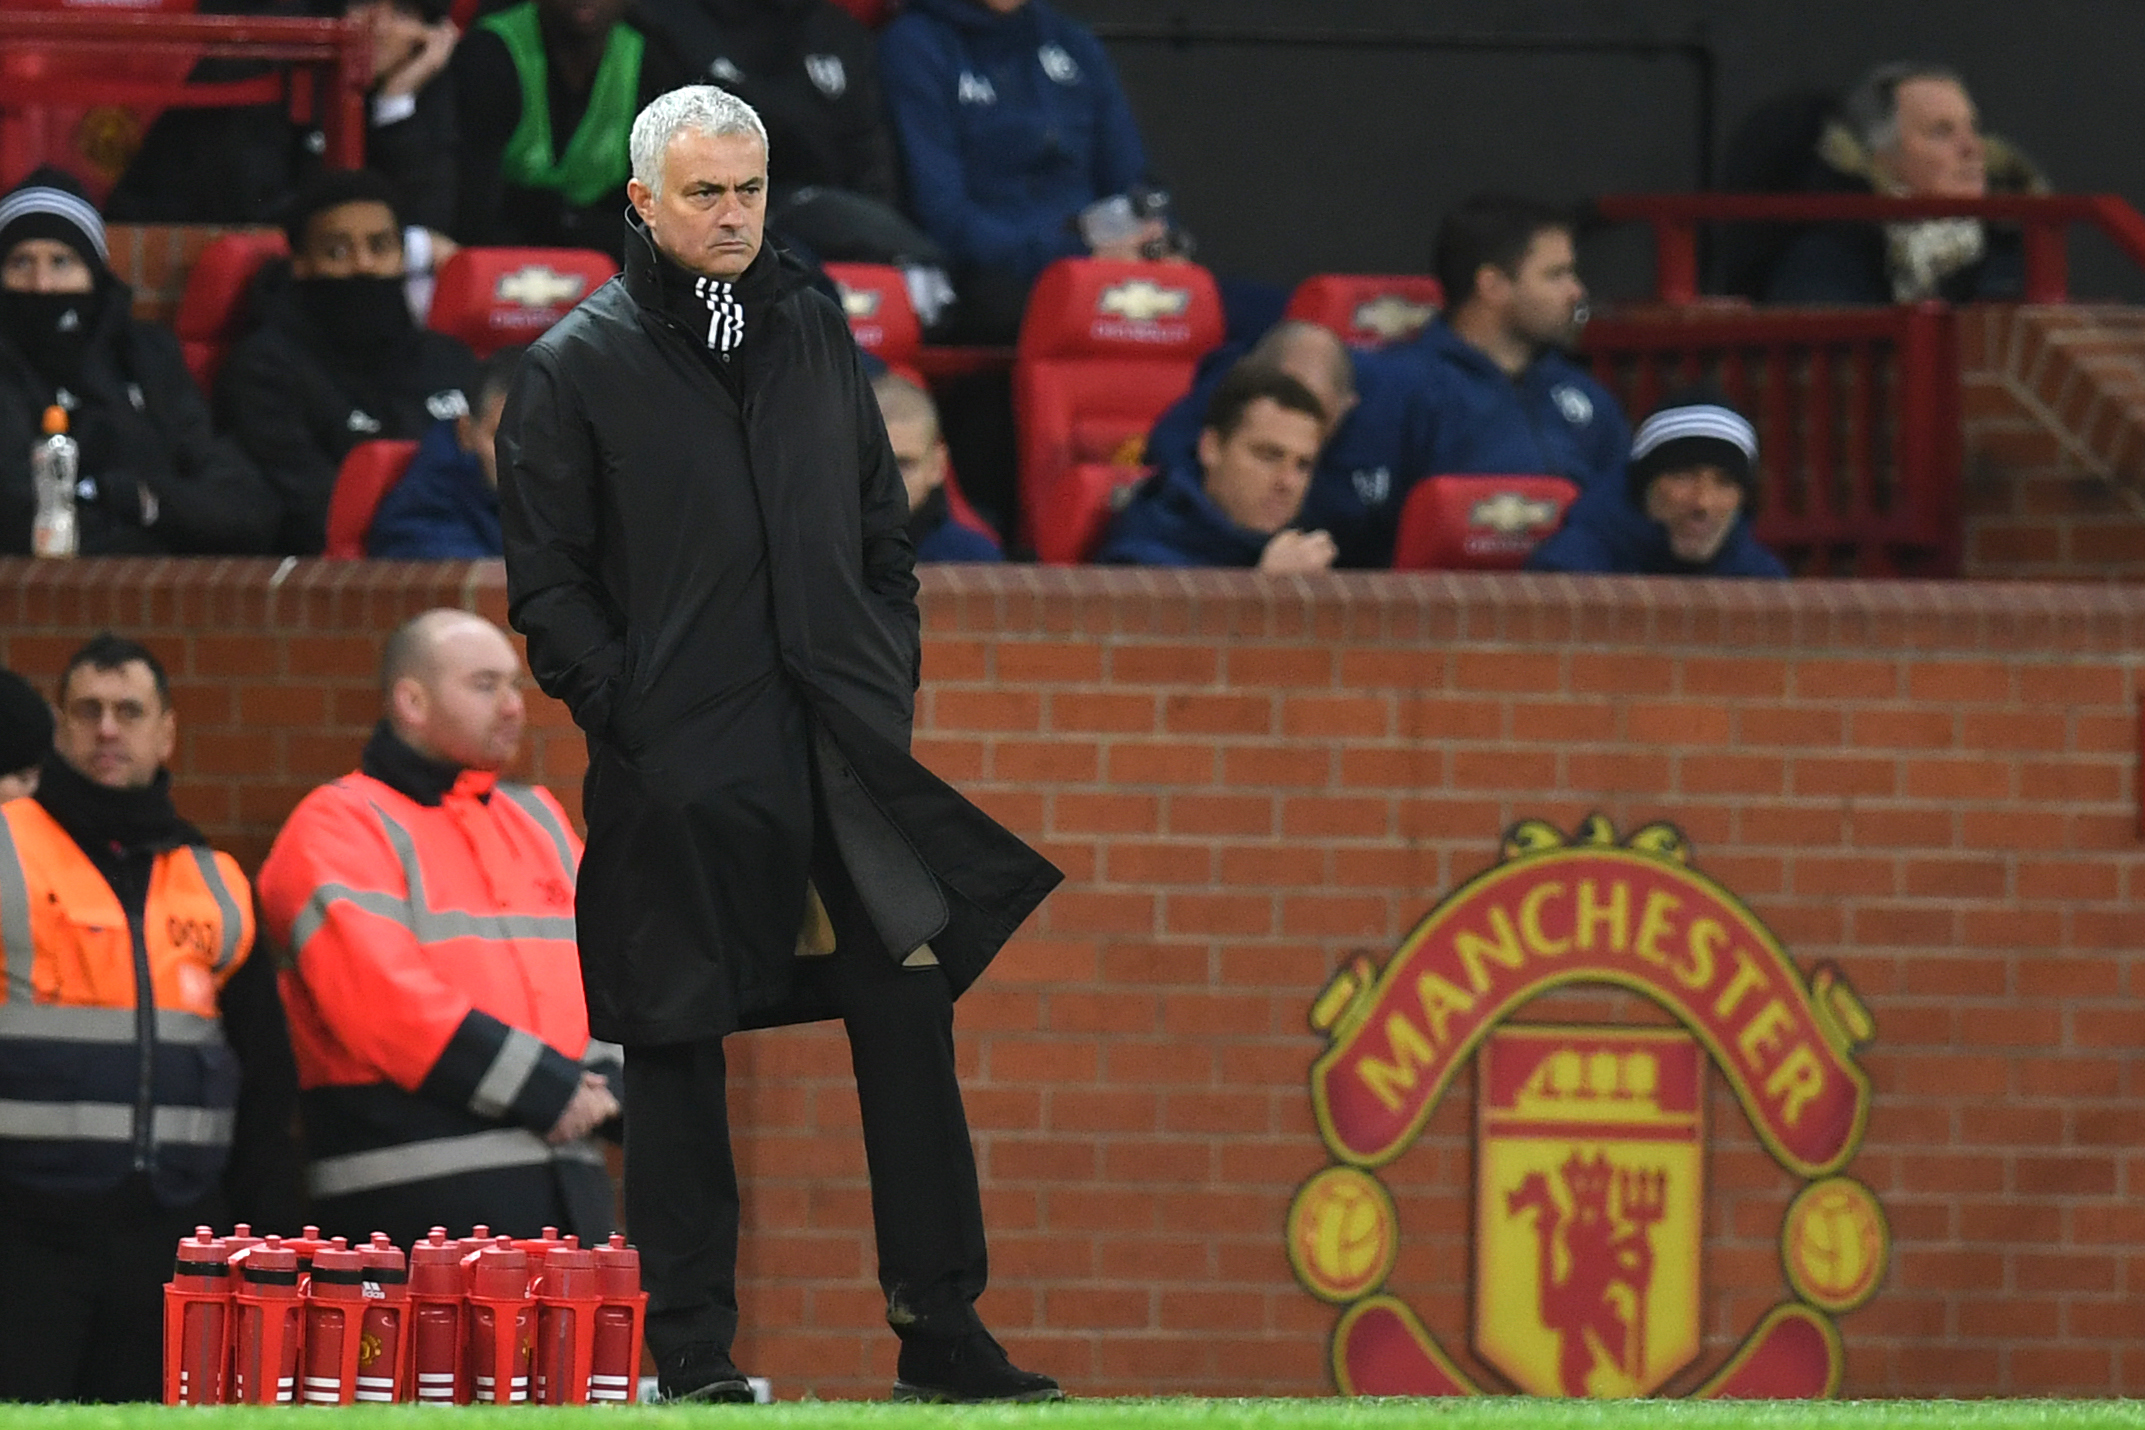 Mourinho will return to Old Trafford for the first time since being sacked last year (Photo credit by PAUL ELLIS/AFP via Getty Images)